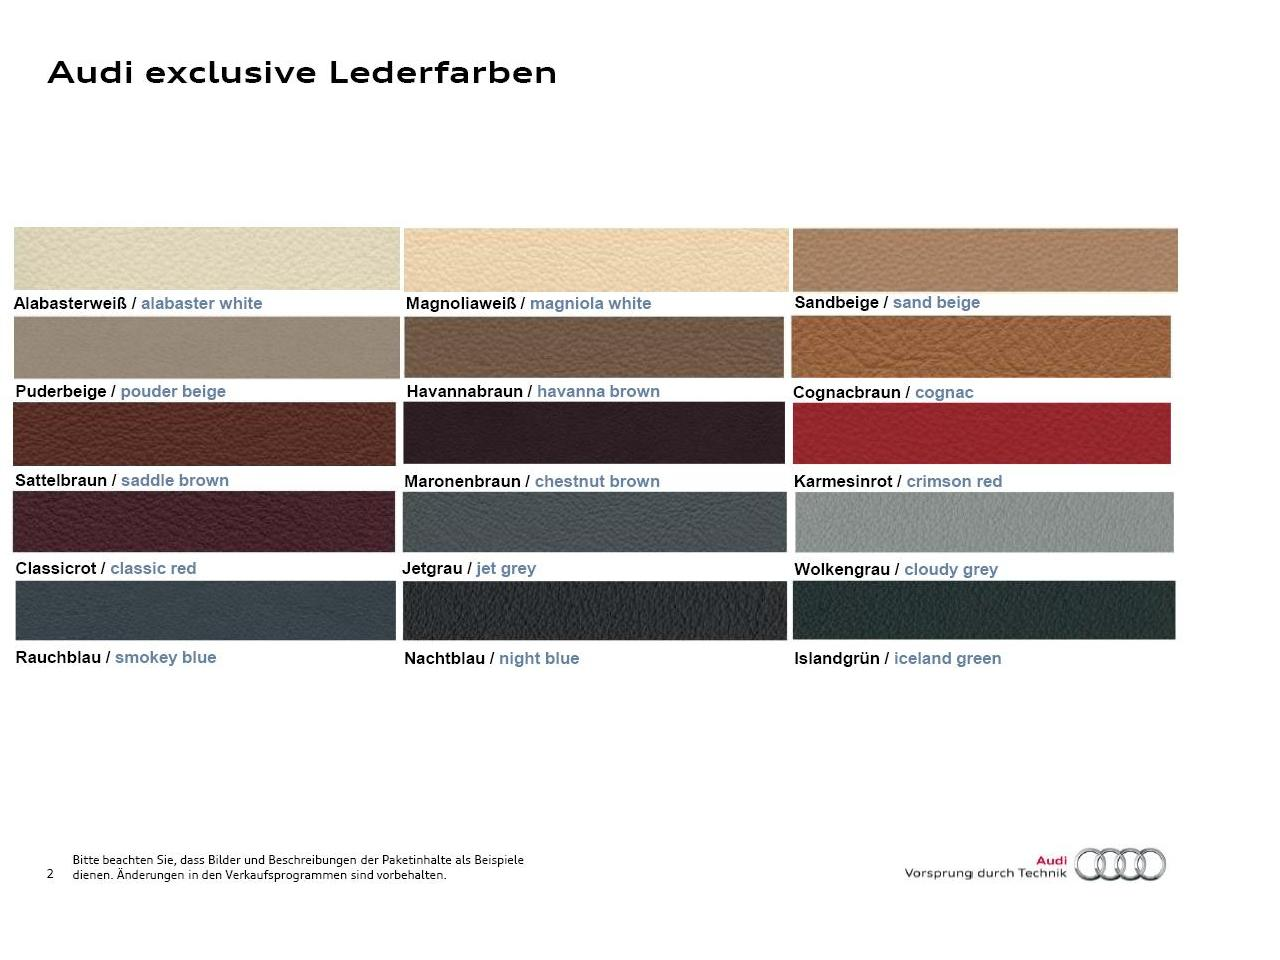 Audi+Exclusive+Lederfarben.JPG